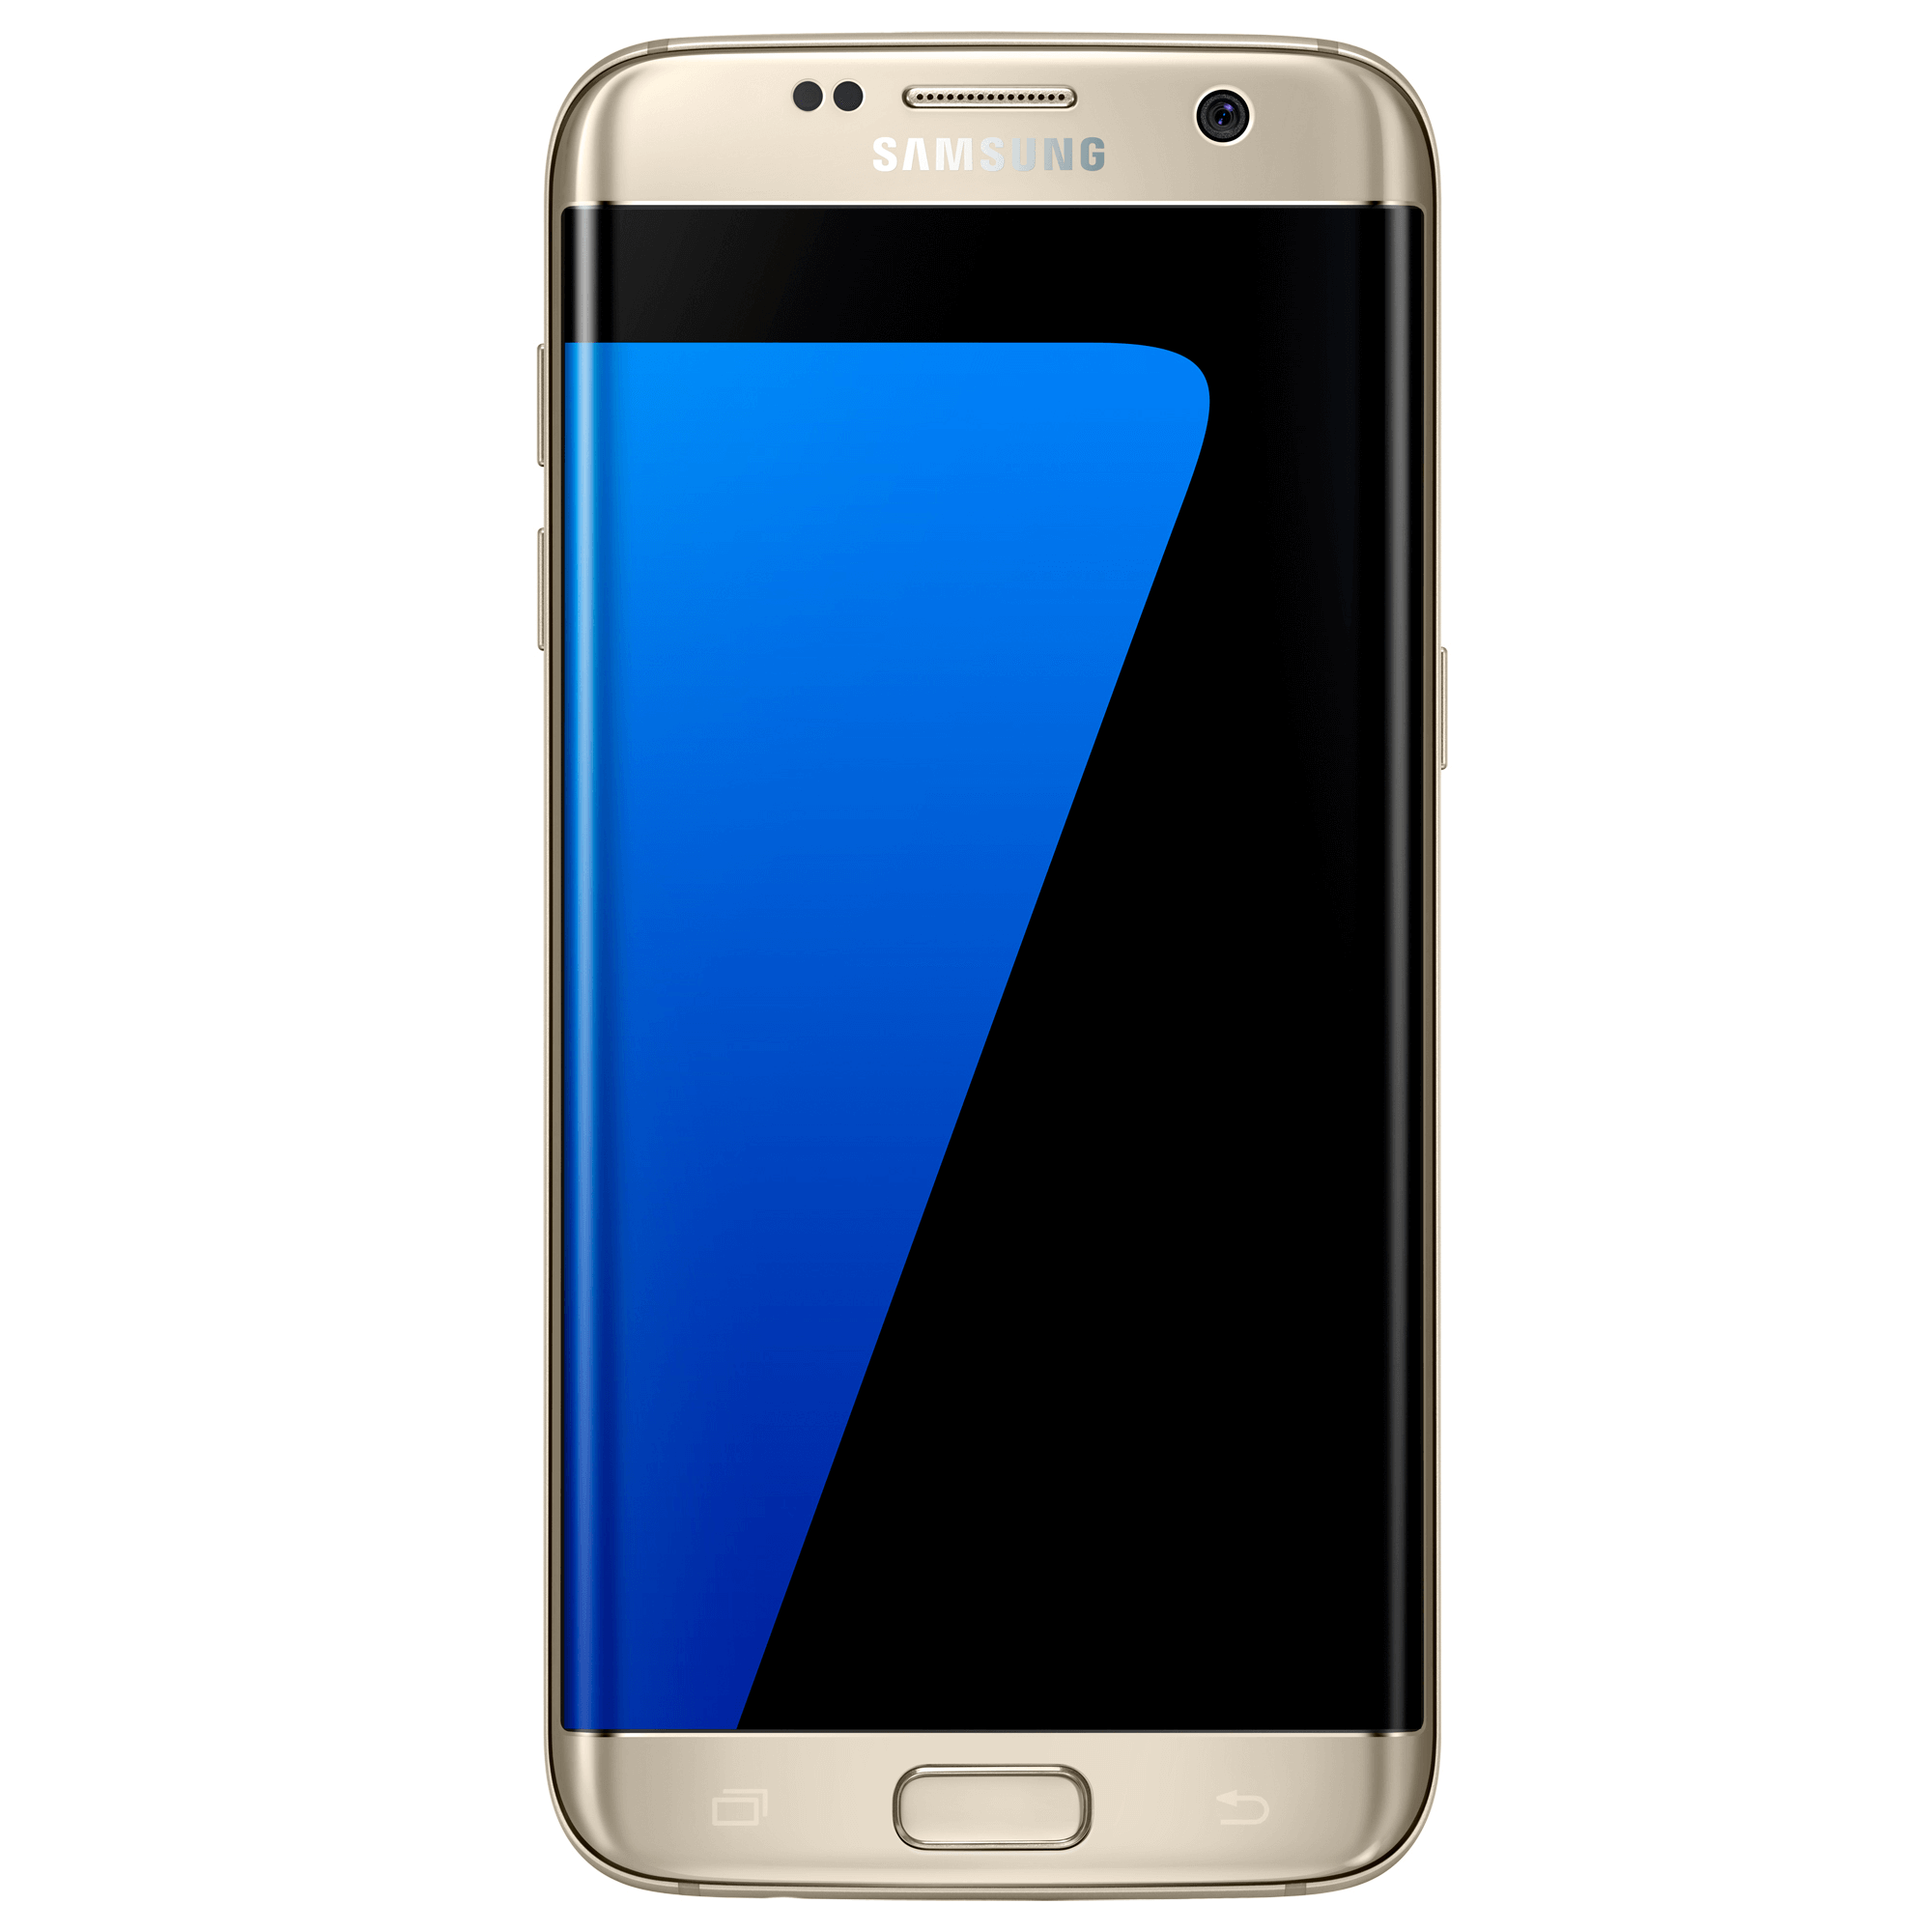 Galaxy S7 Induktives Laden Samsung Galaxy S7 Edge Populairder Dan S7 Repair It Now